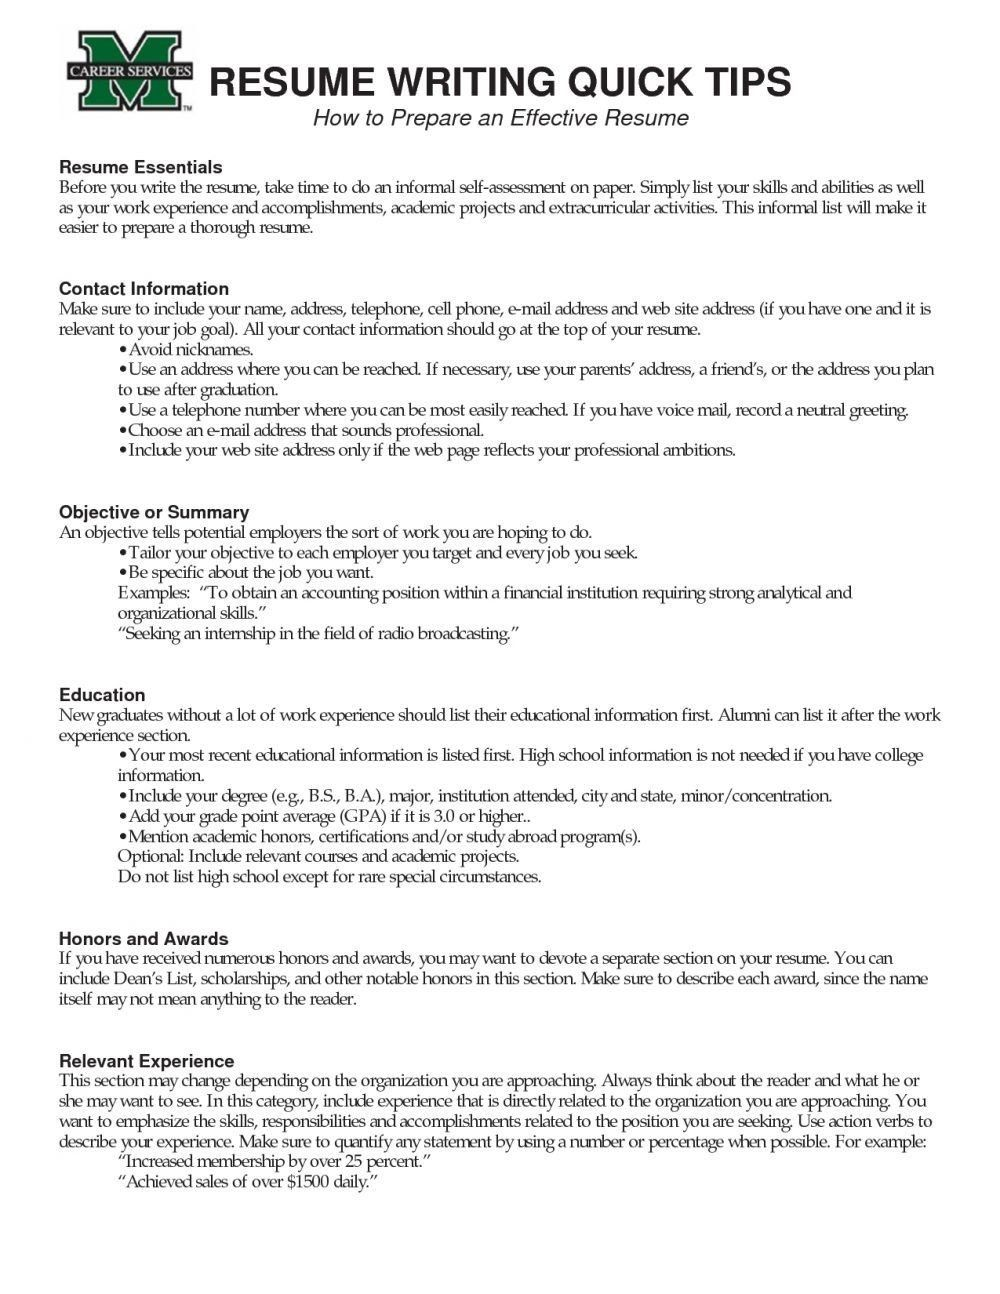 Extracurricular Activities On Resume Activities Resume Examples And Honors Extra Curricular For Effective Resume Resume Writing Resume